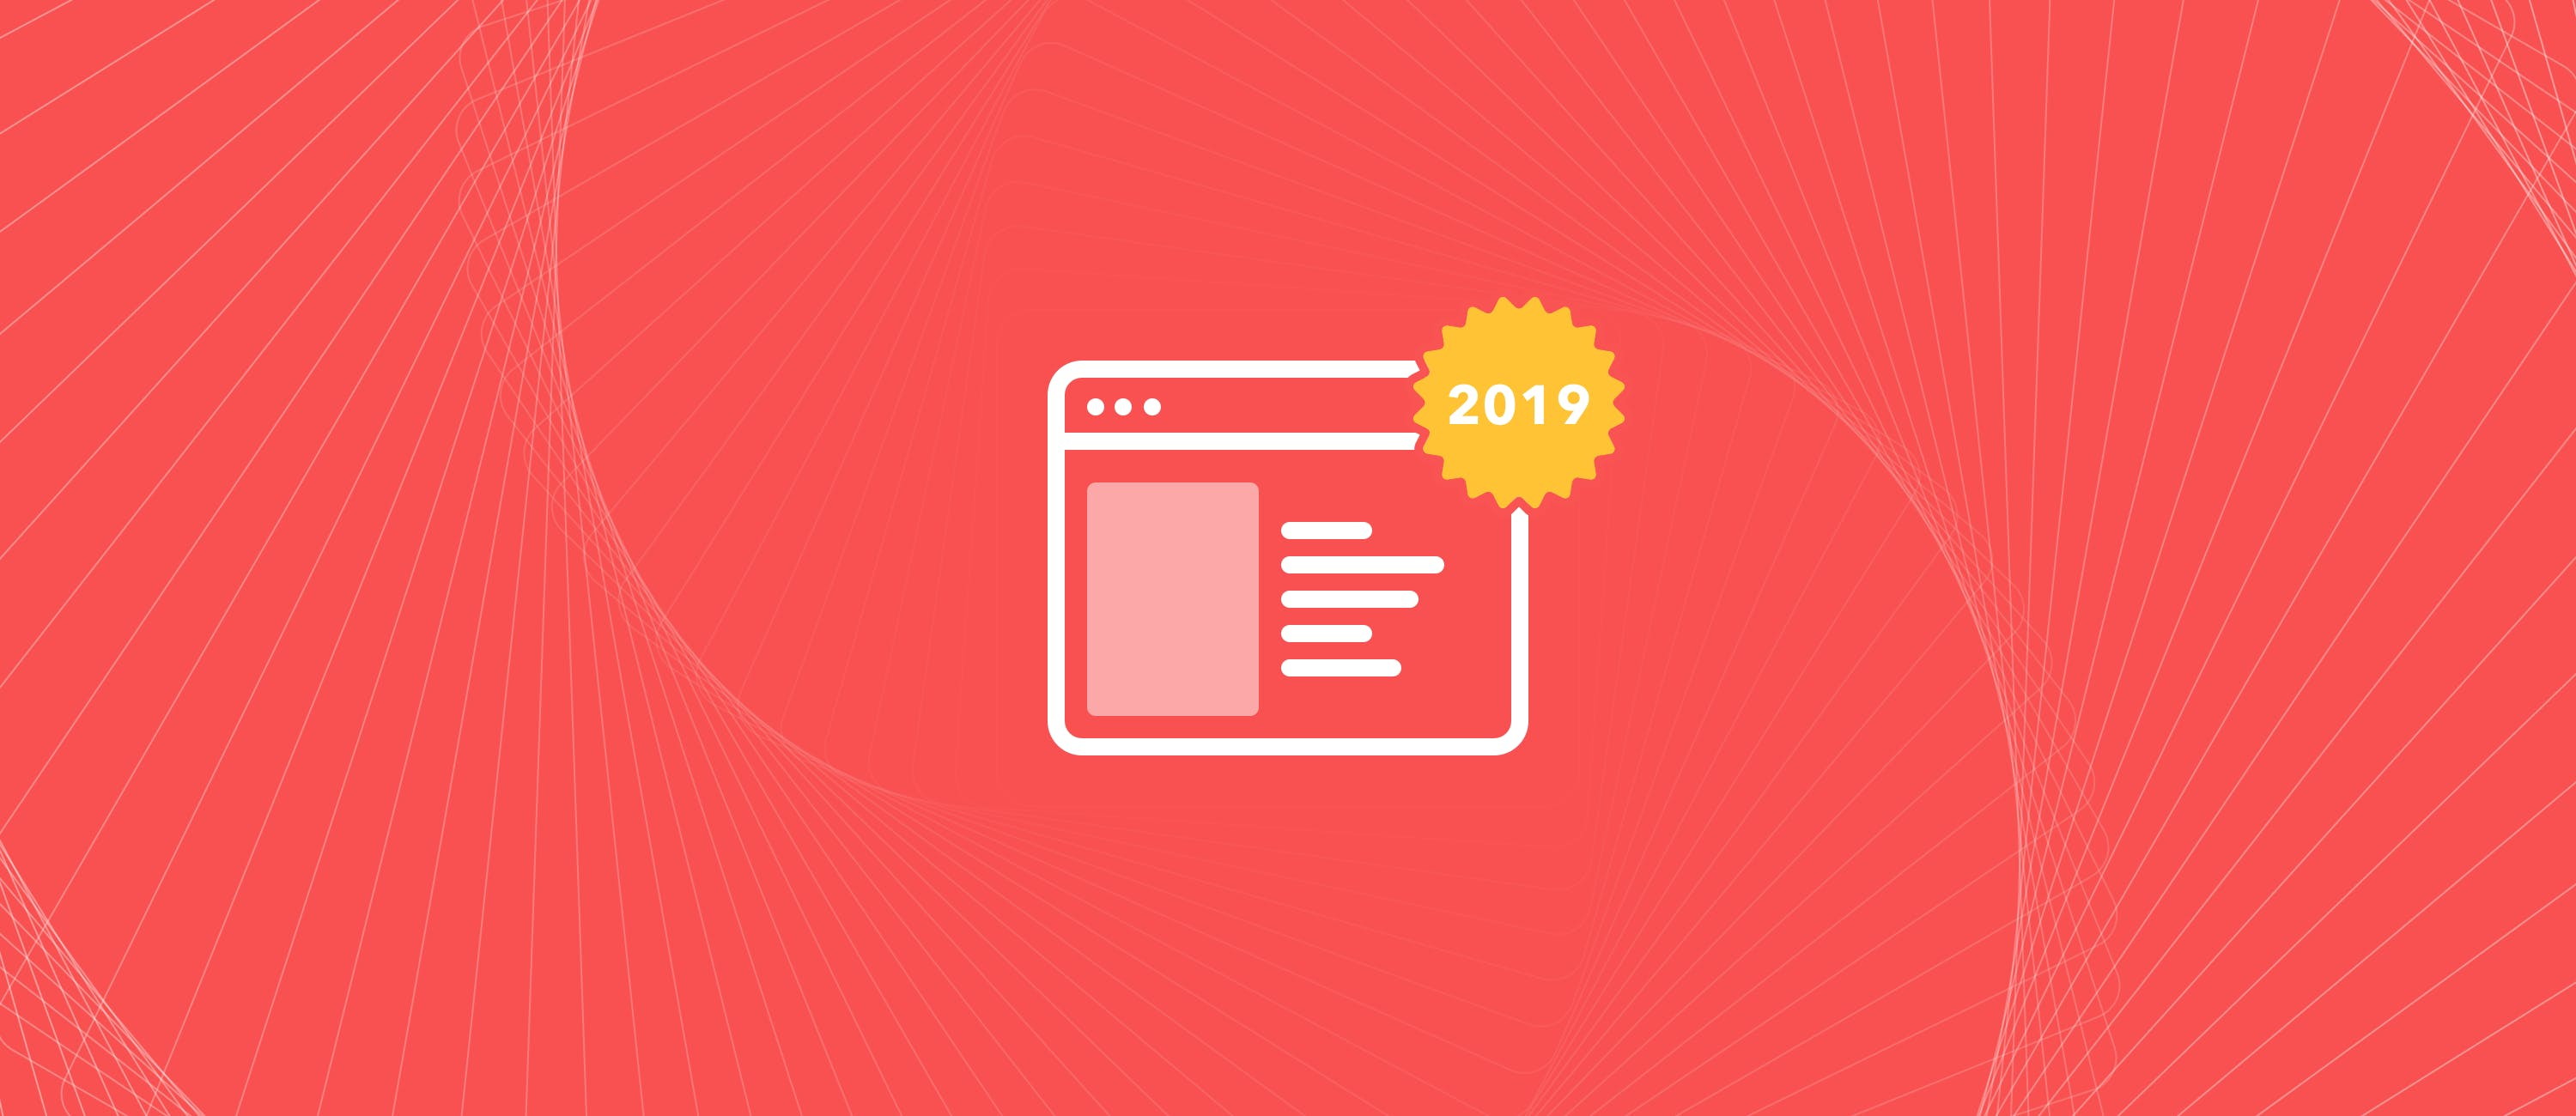 5 Marketing Trends to Test in 2019